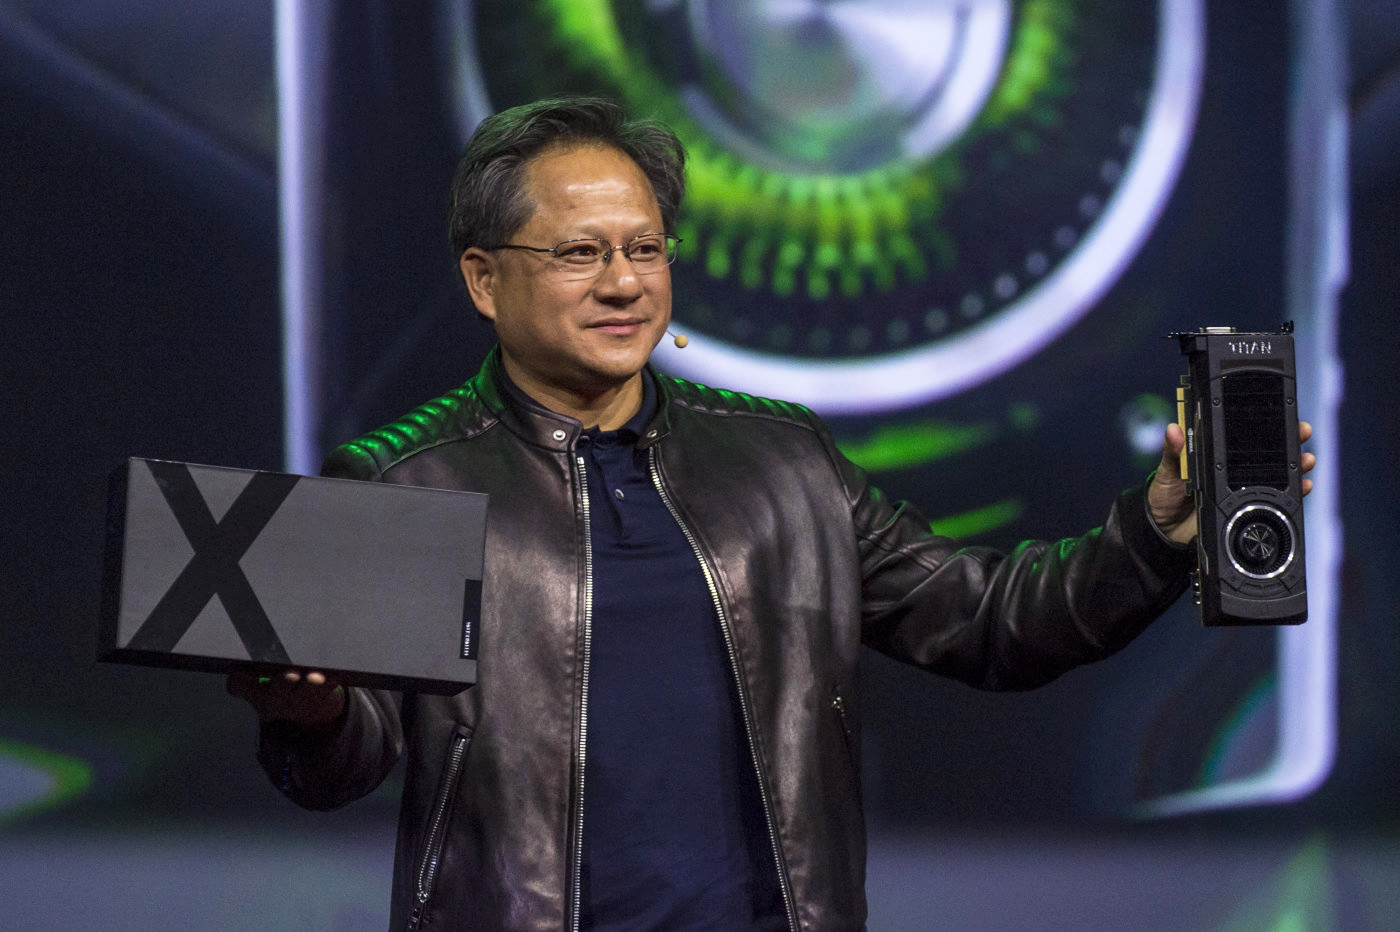 Glitchy NVIDIA graphics driver cooks graphics cards